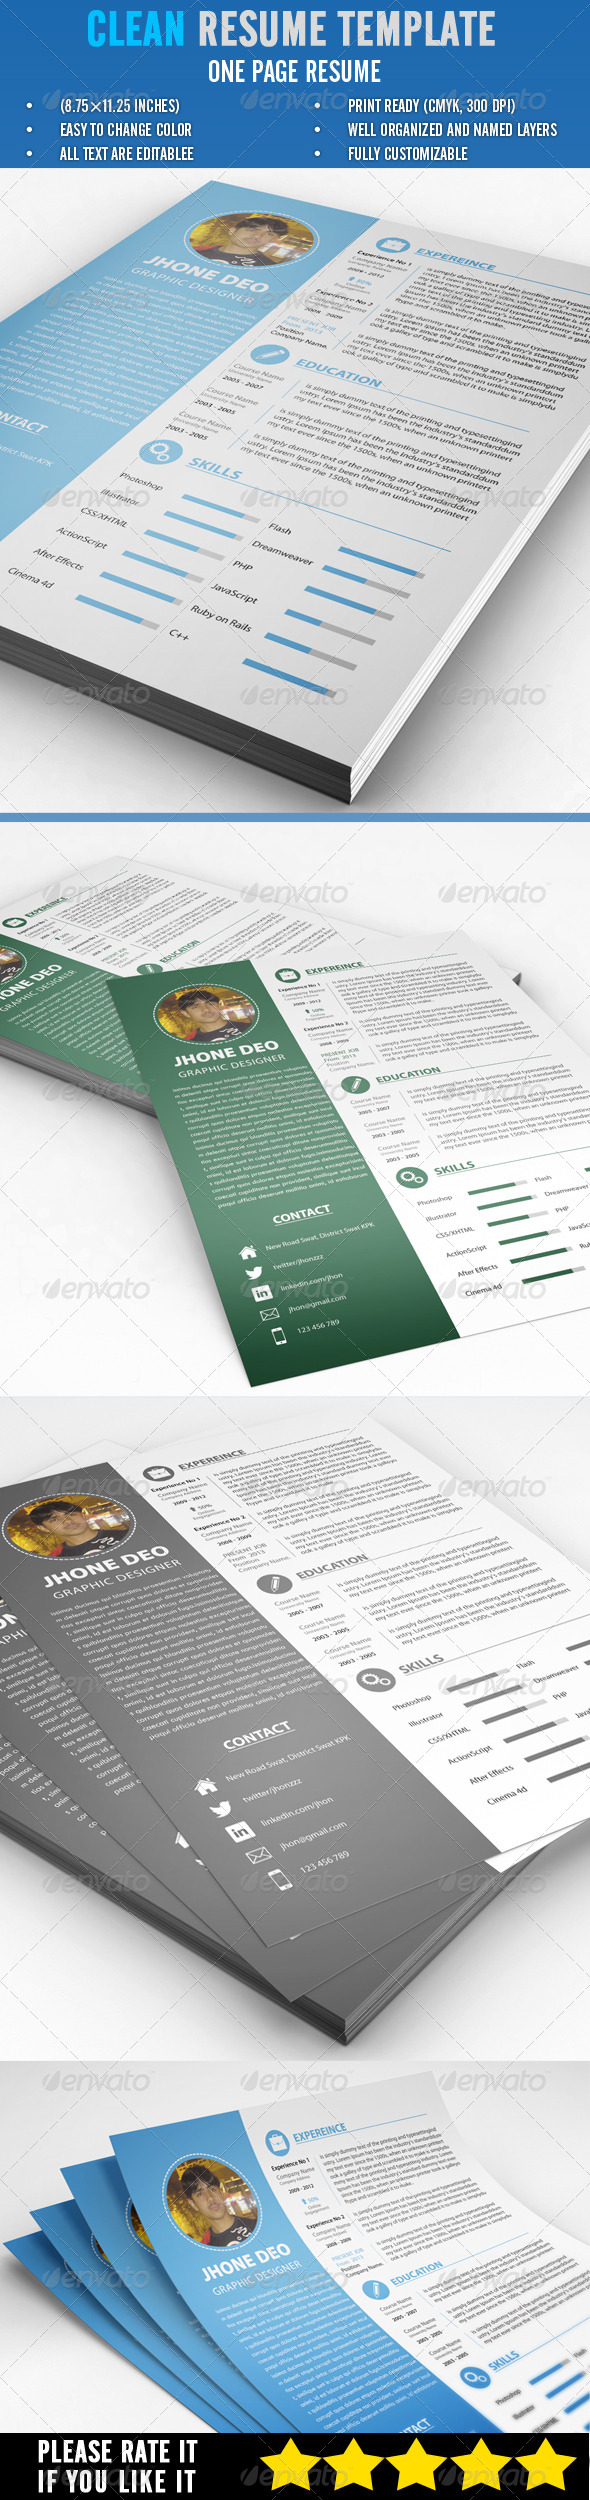 GraphicRiver Clean Resume Template 6805785